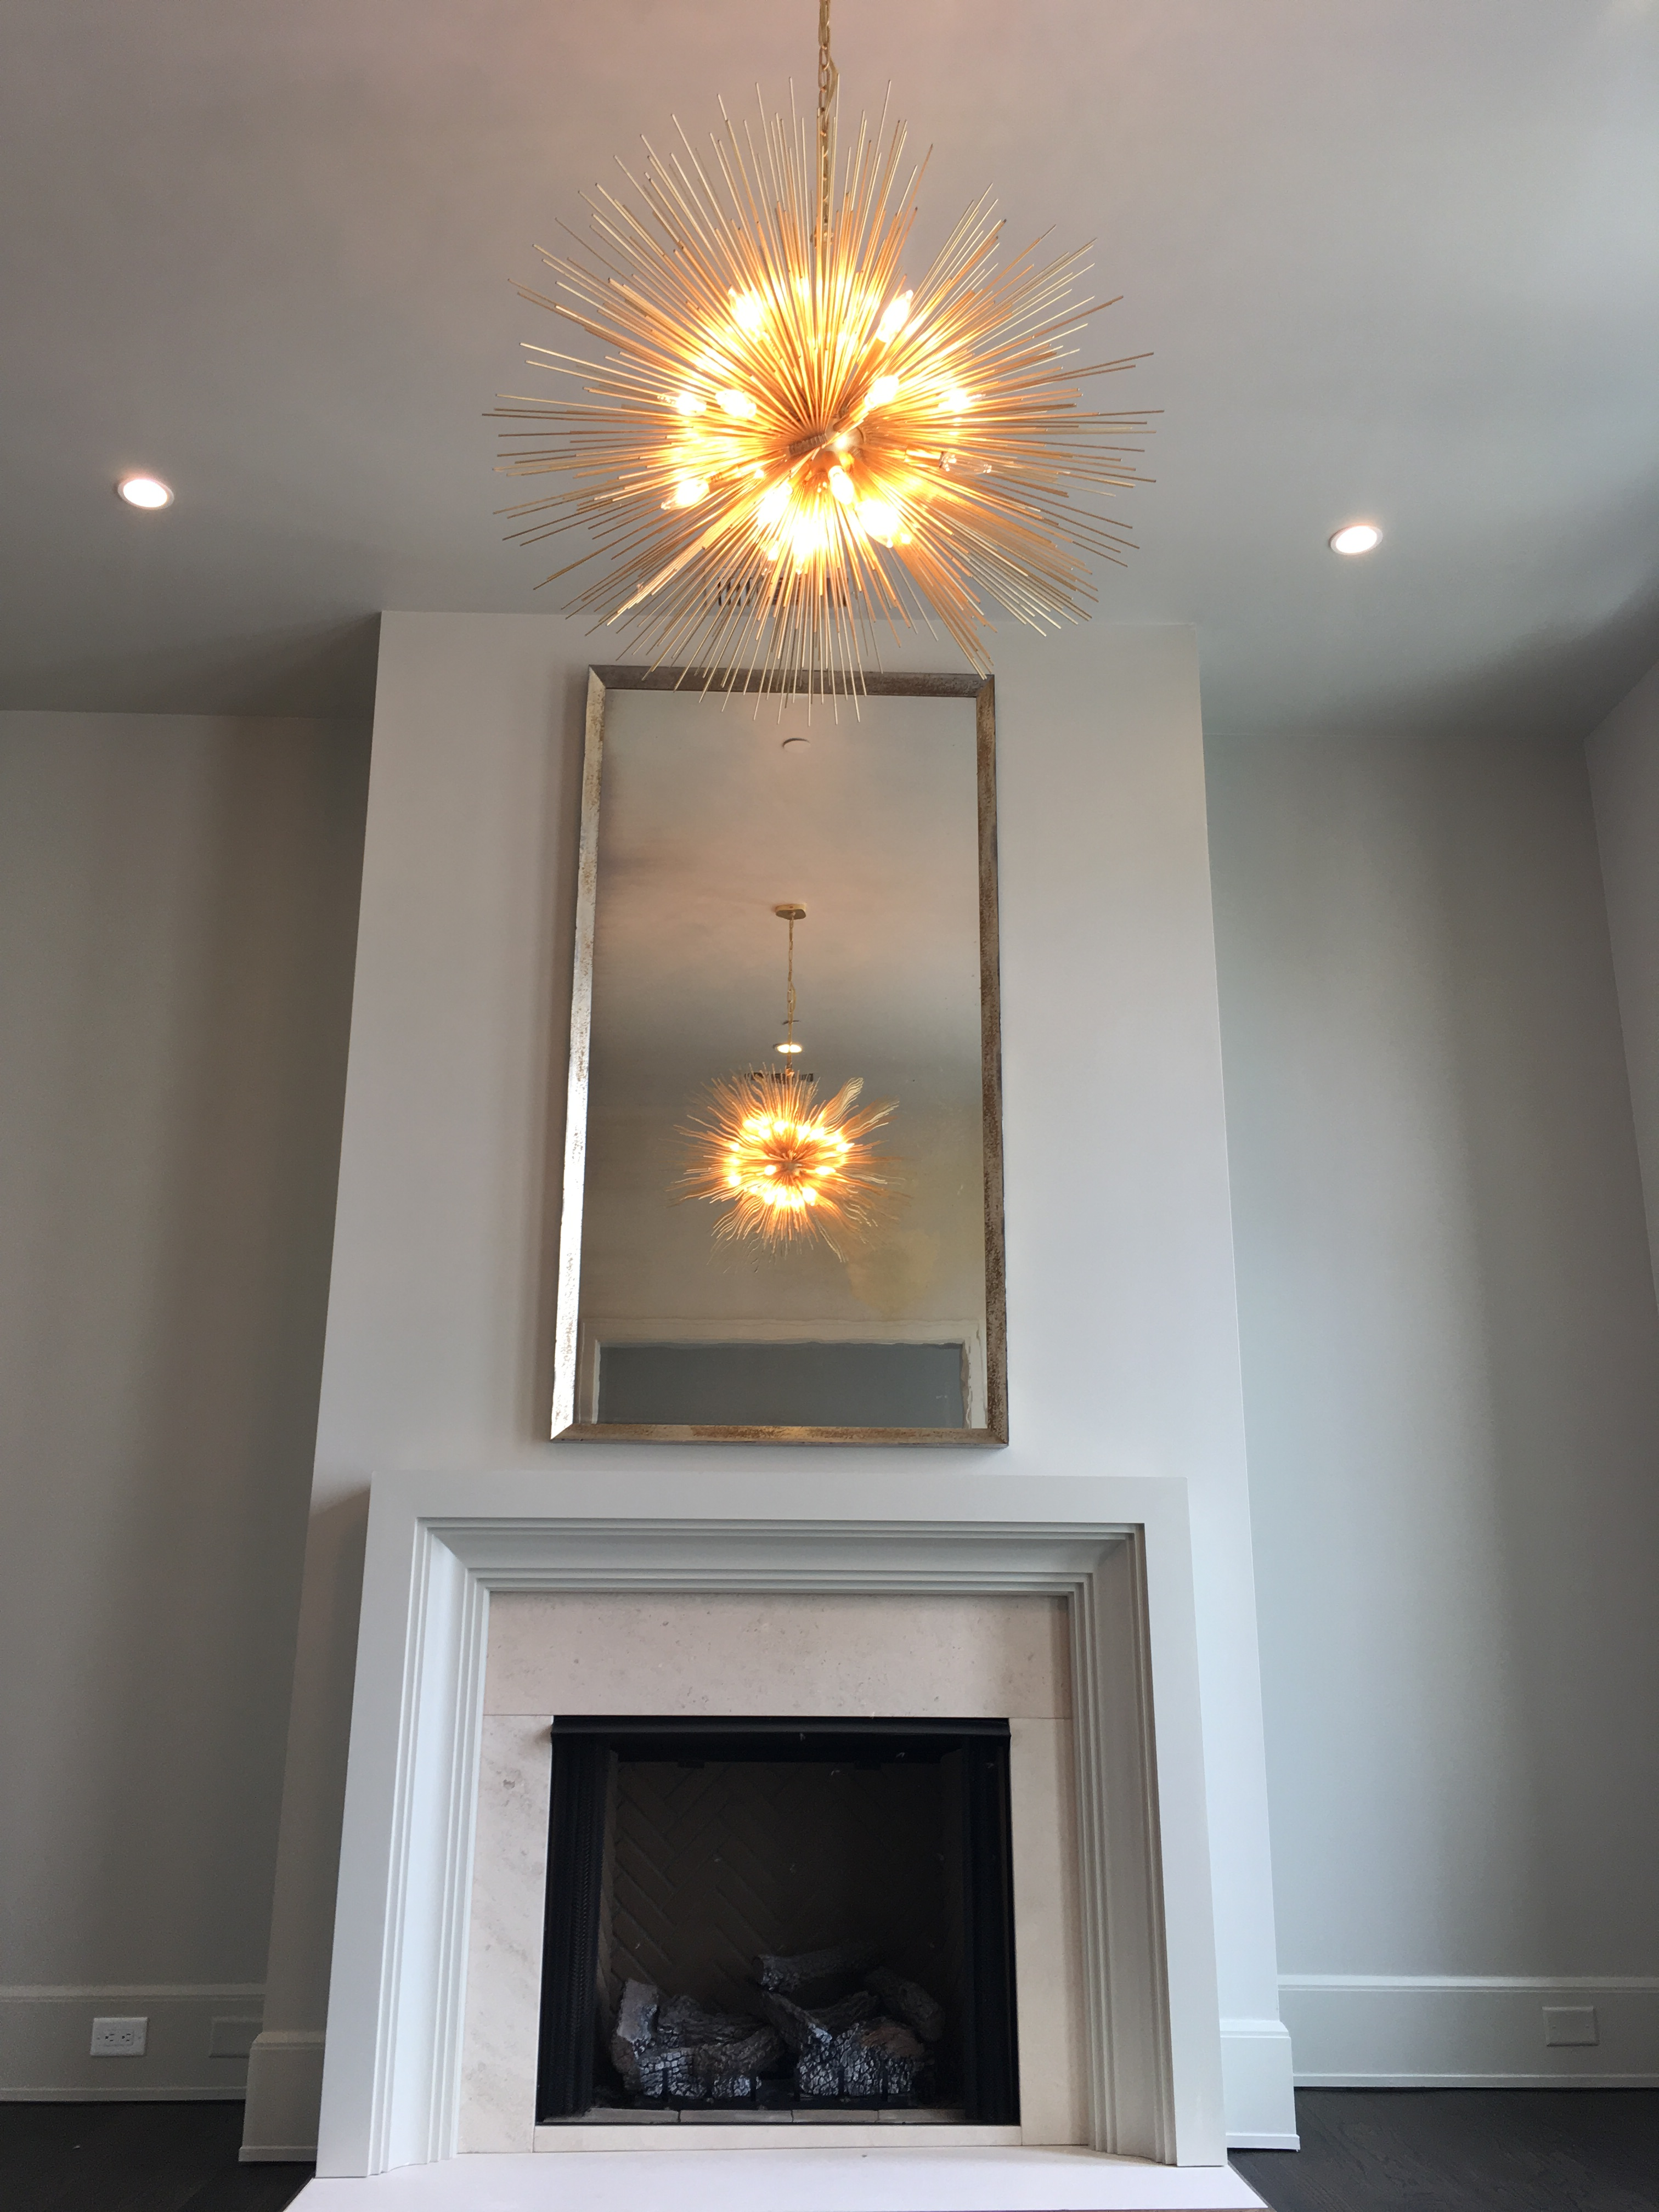 dainty houzz above design essential pretty soothing also round mirrors by dan with mirror fireplacepertaining zn fireplace hanging january tips in a gregory on to